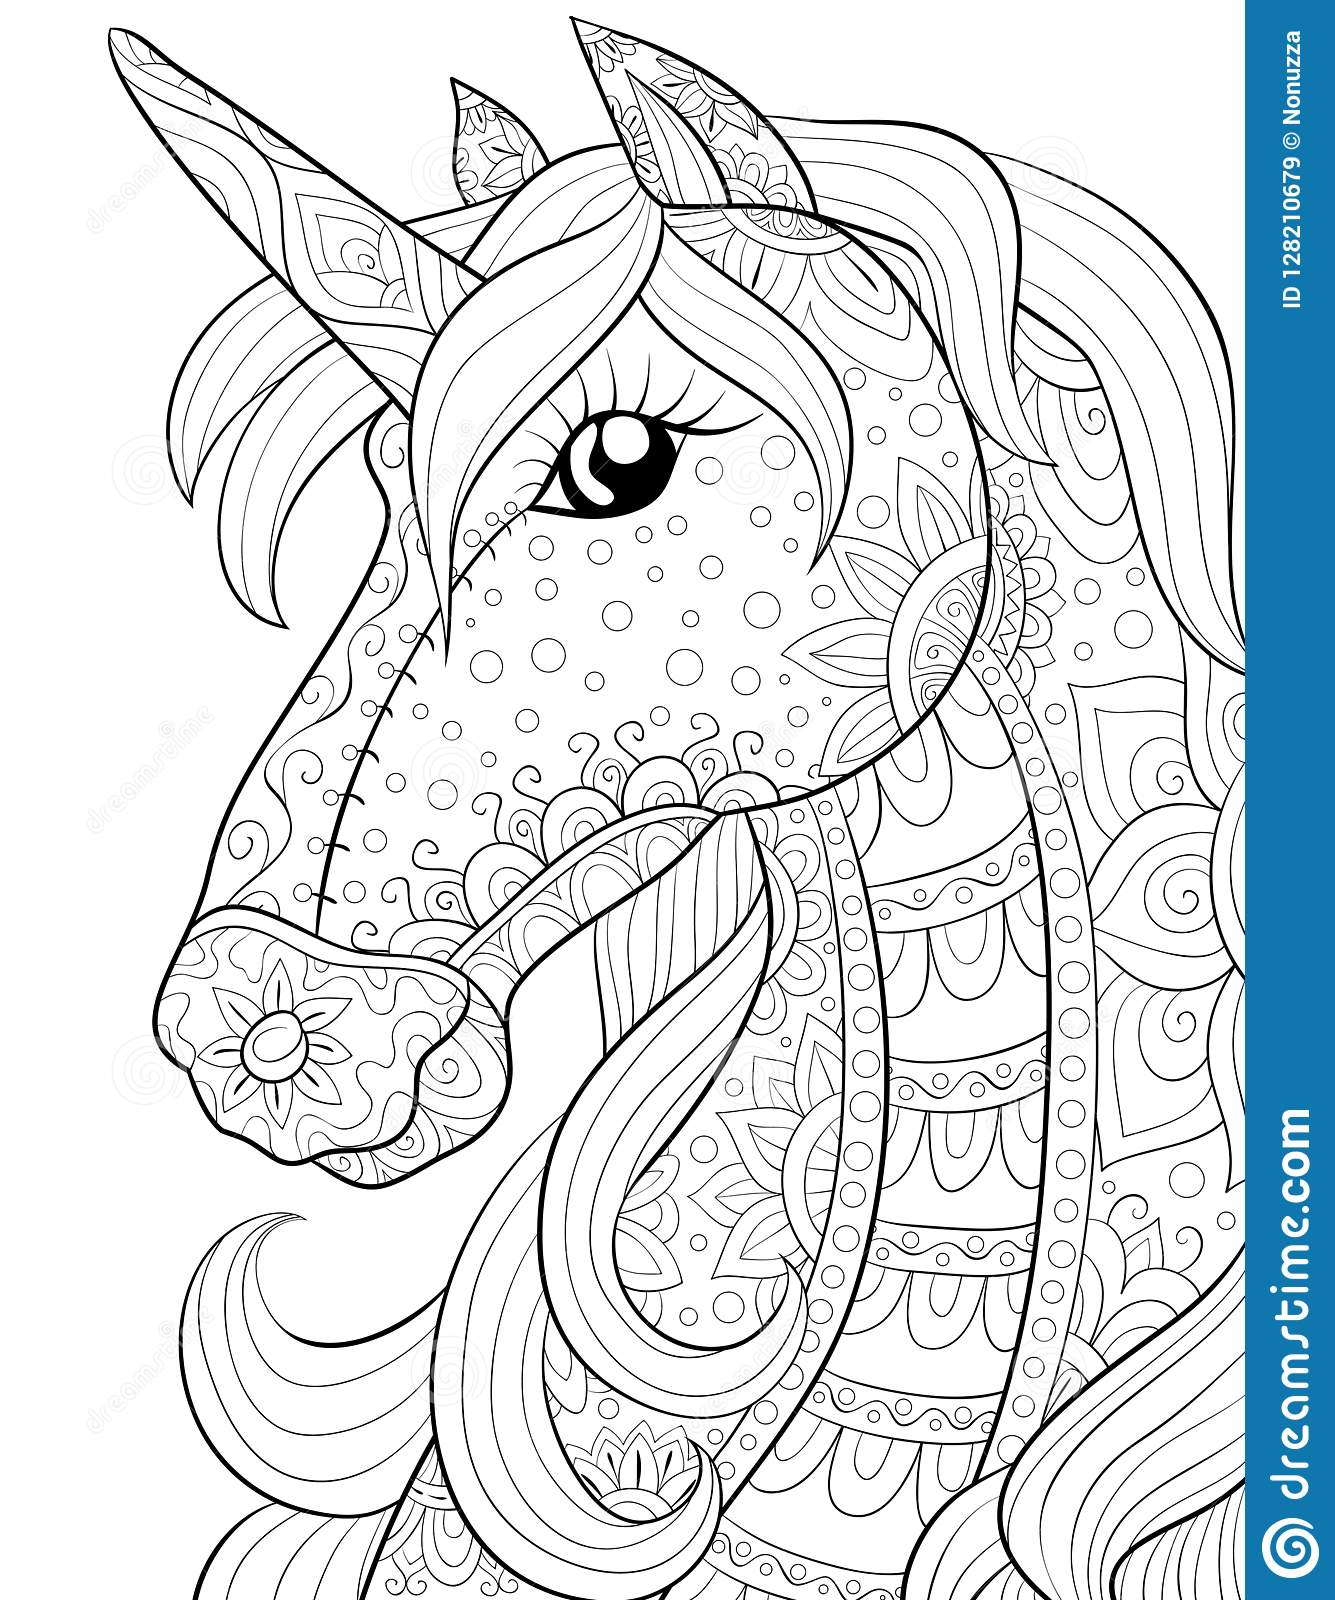 Adult Coloring Book,page A Cute Horse,unicorn Image For Relaxing ...